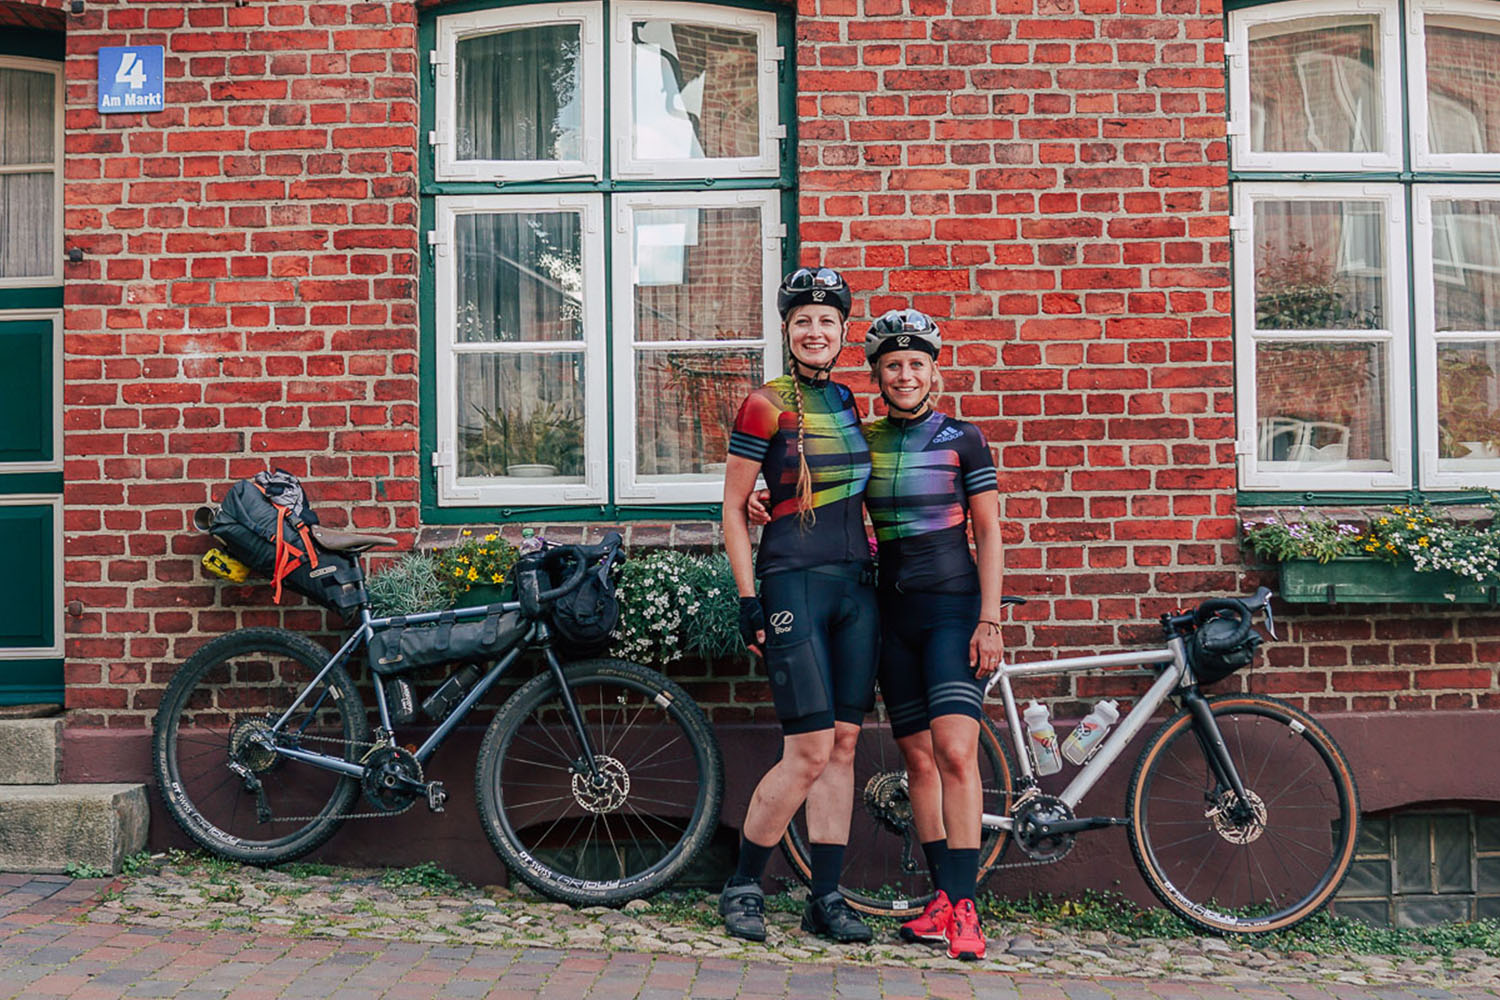 holy_gravel_2020_bikepacking_radelmaedchen-1500x1000_407